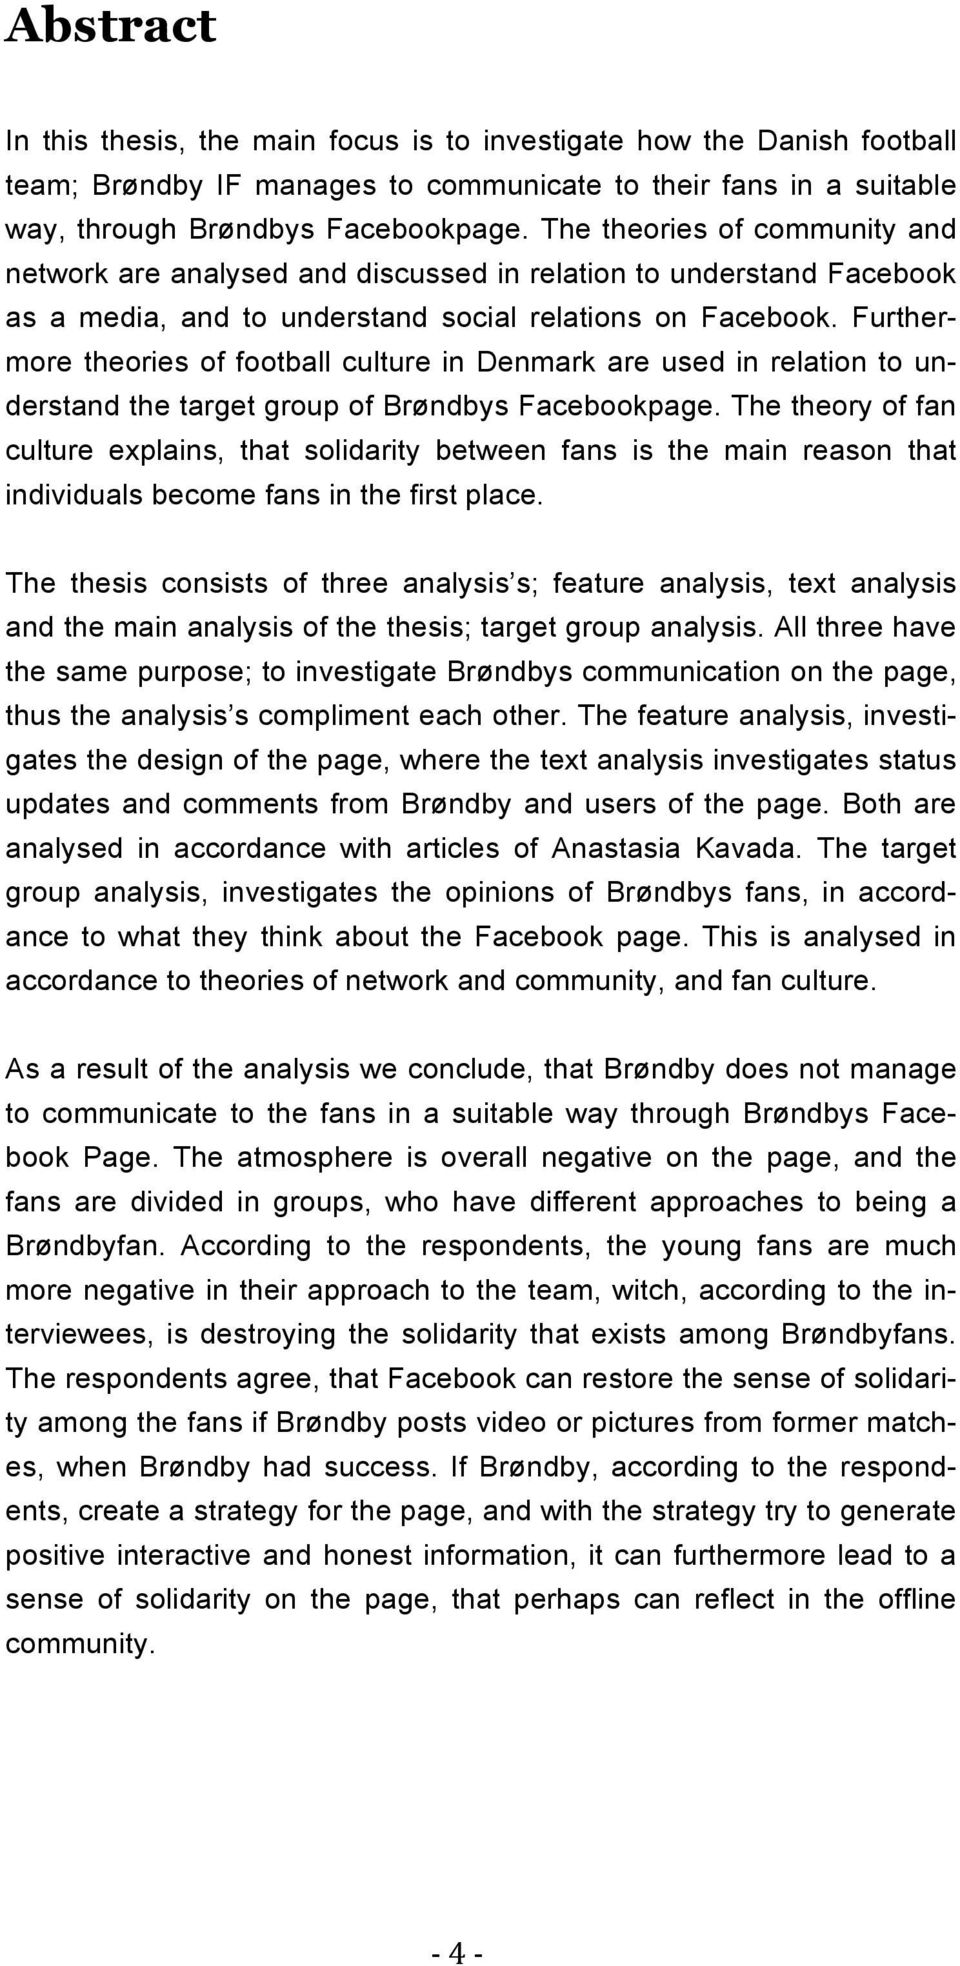 Furthermore theories of football culture in Denmark are used in relation to understand the target group of Brøndbys Facebookpage.